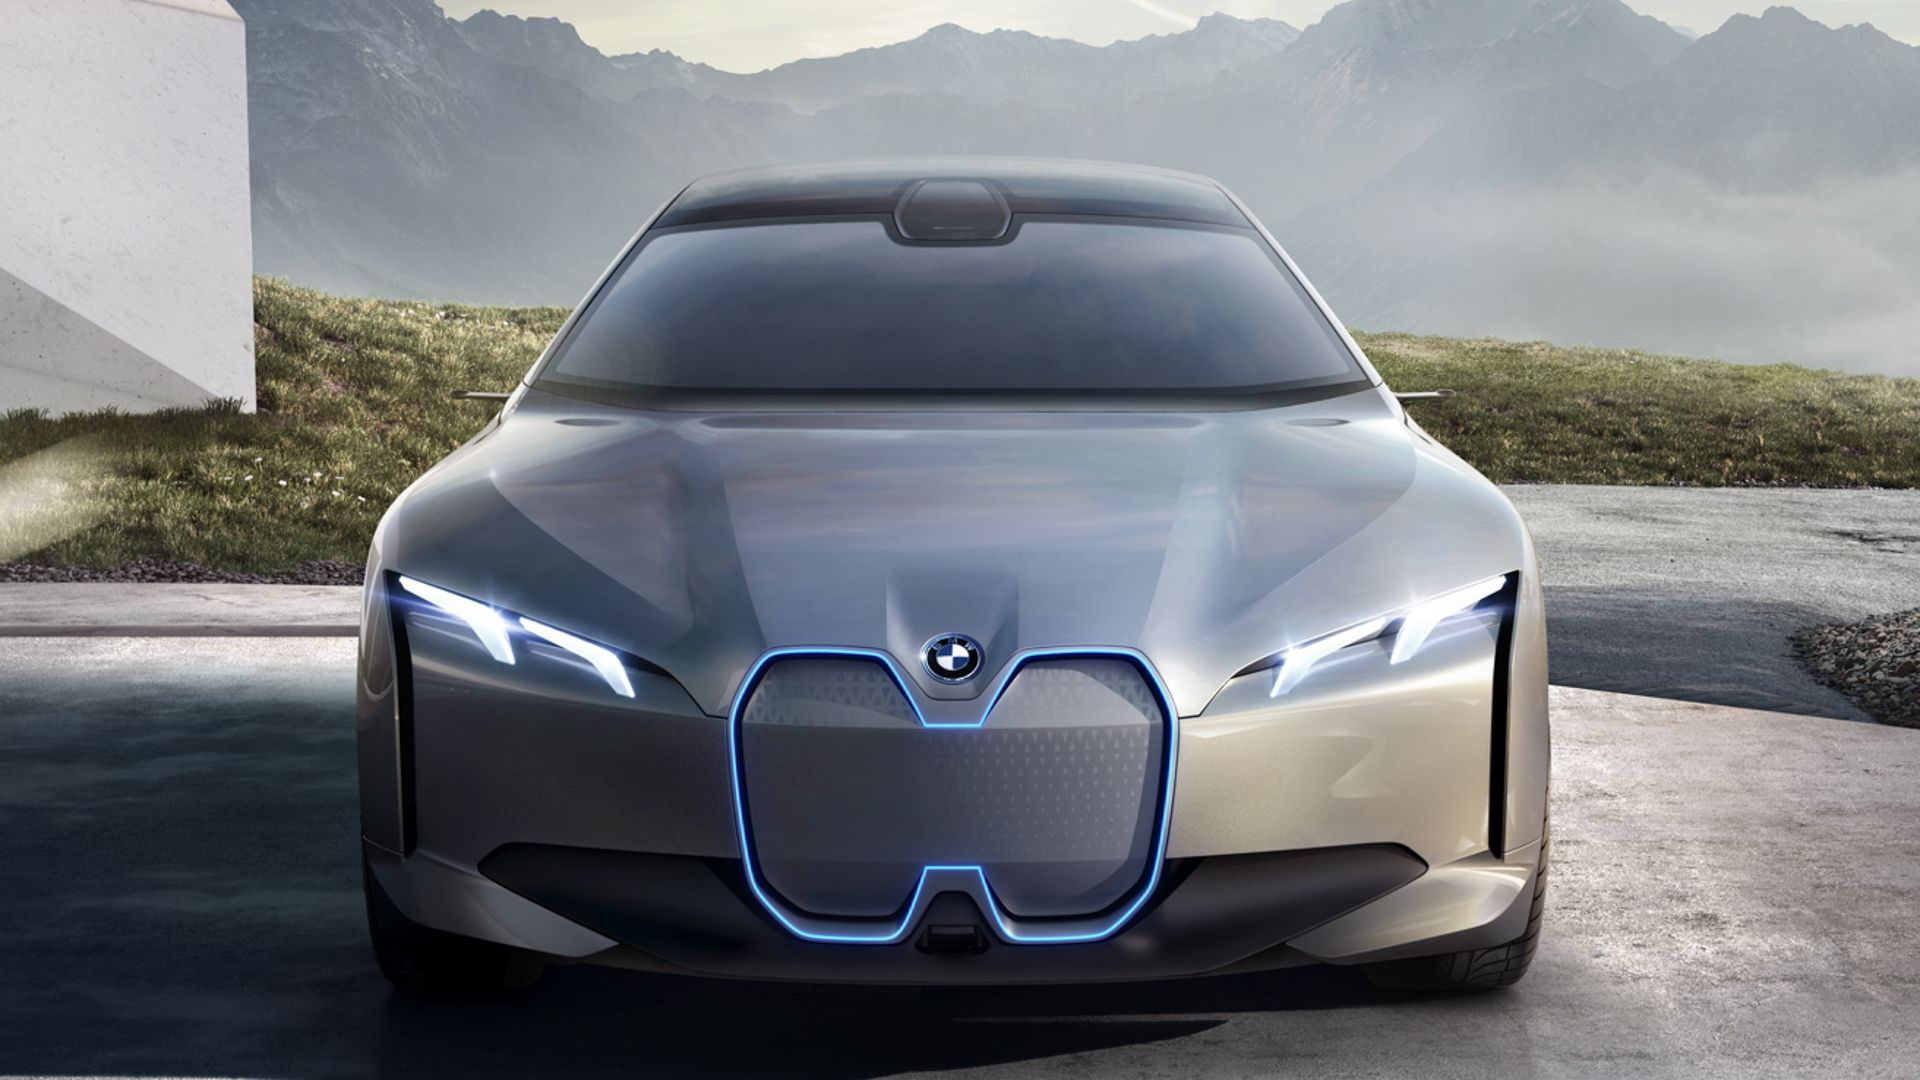 Dealers Get Bmw I4 Preview Excited For The New Model In 2020 Bmw Concept Bmw I Bmw